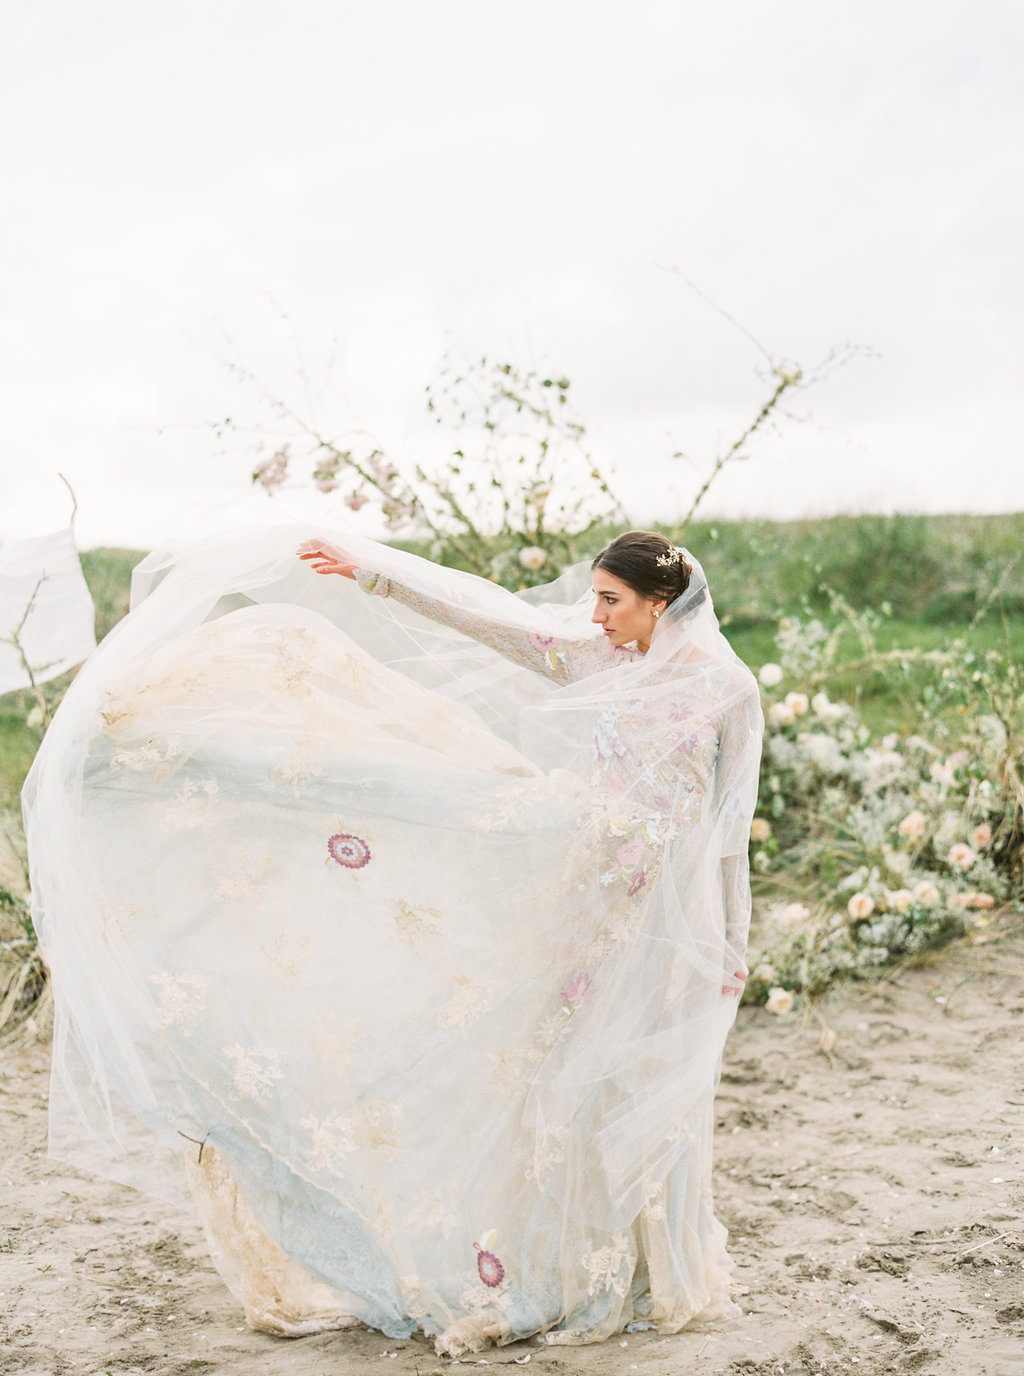 wedding dresses - photo by Be Light Photography http://ruffledblog.com/coastal-oregon-inspiration-with-a-show-stopping-wedding-gown